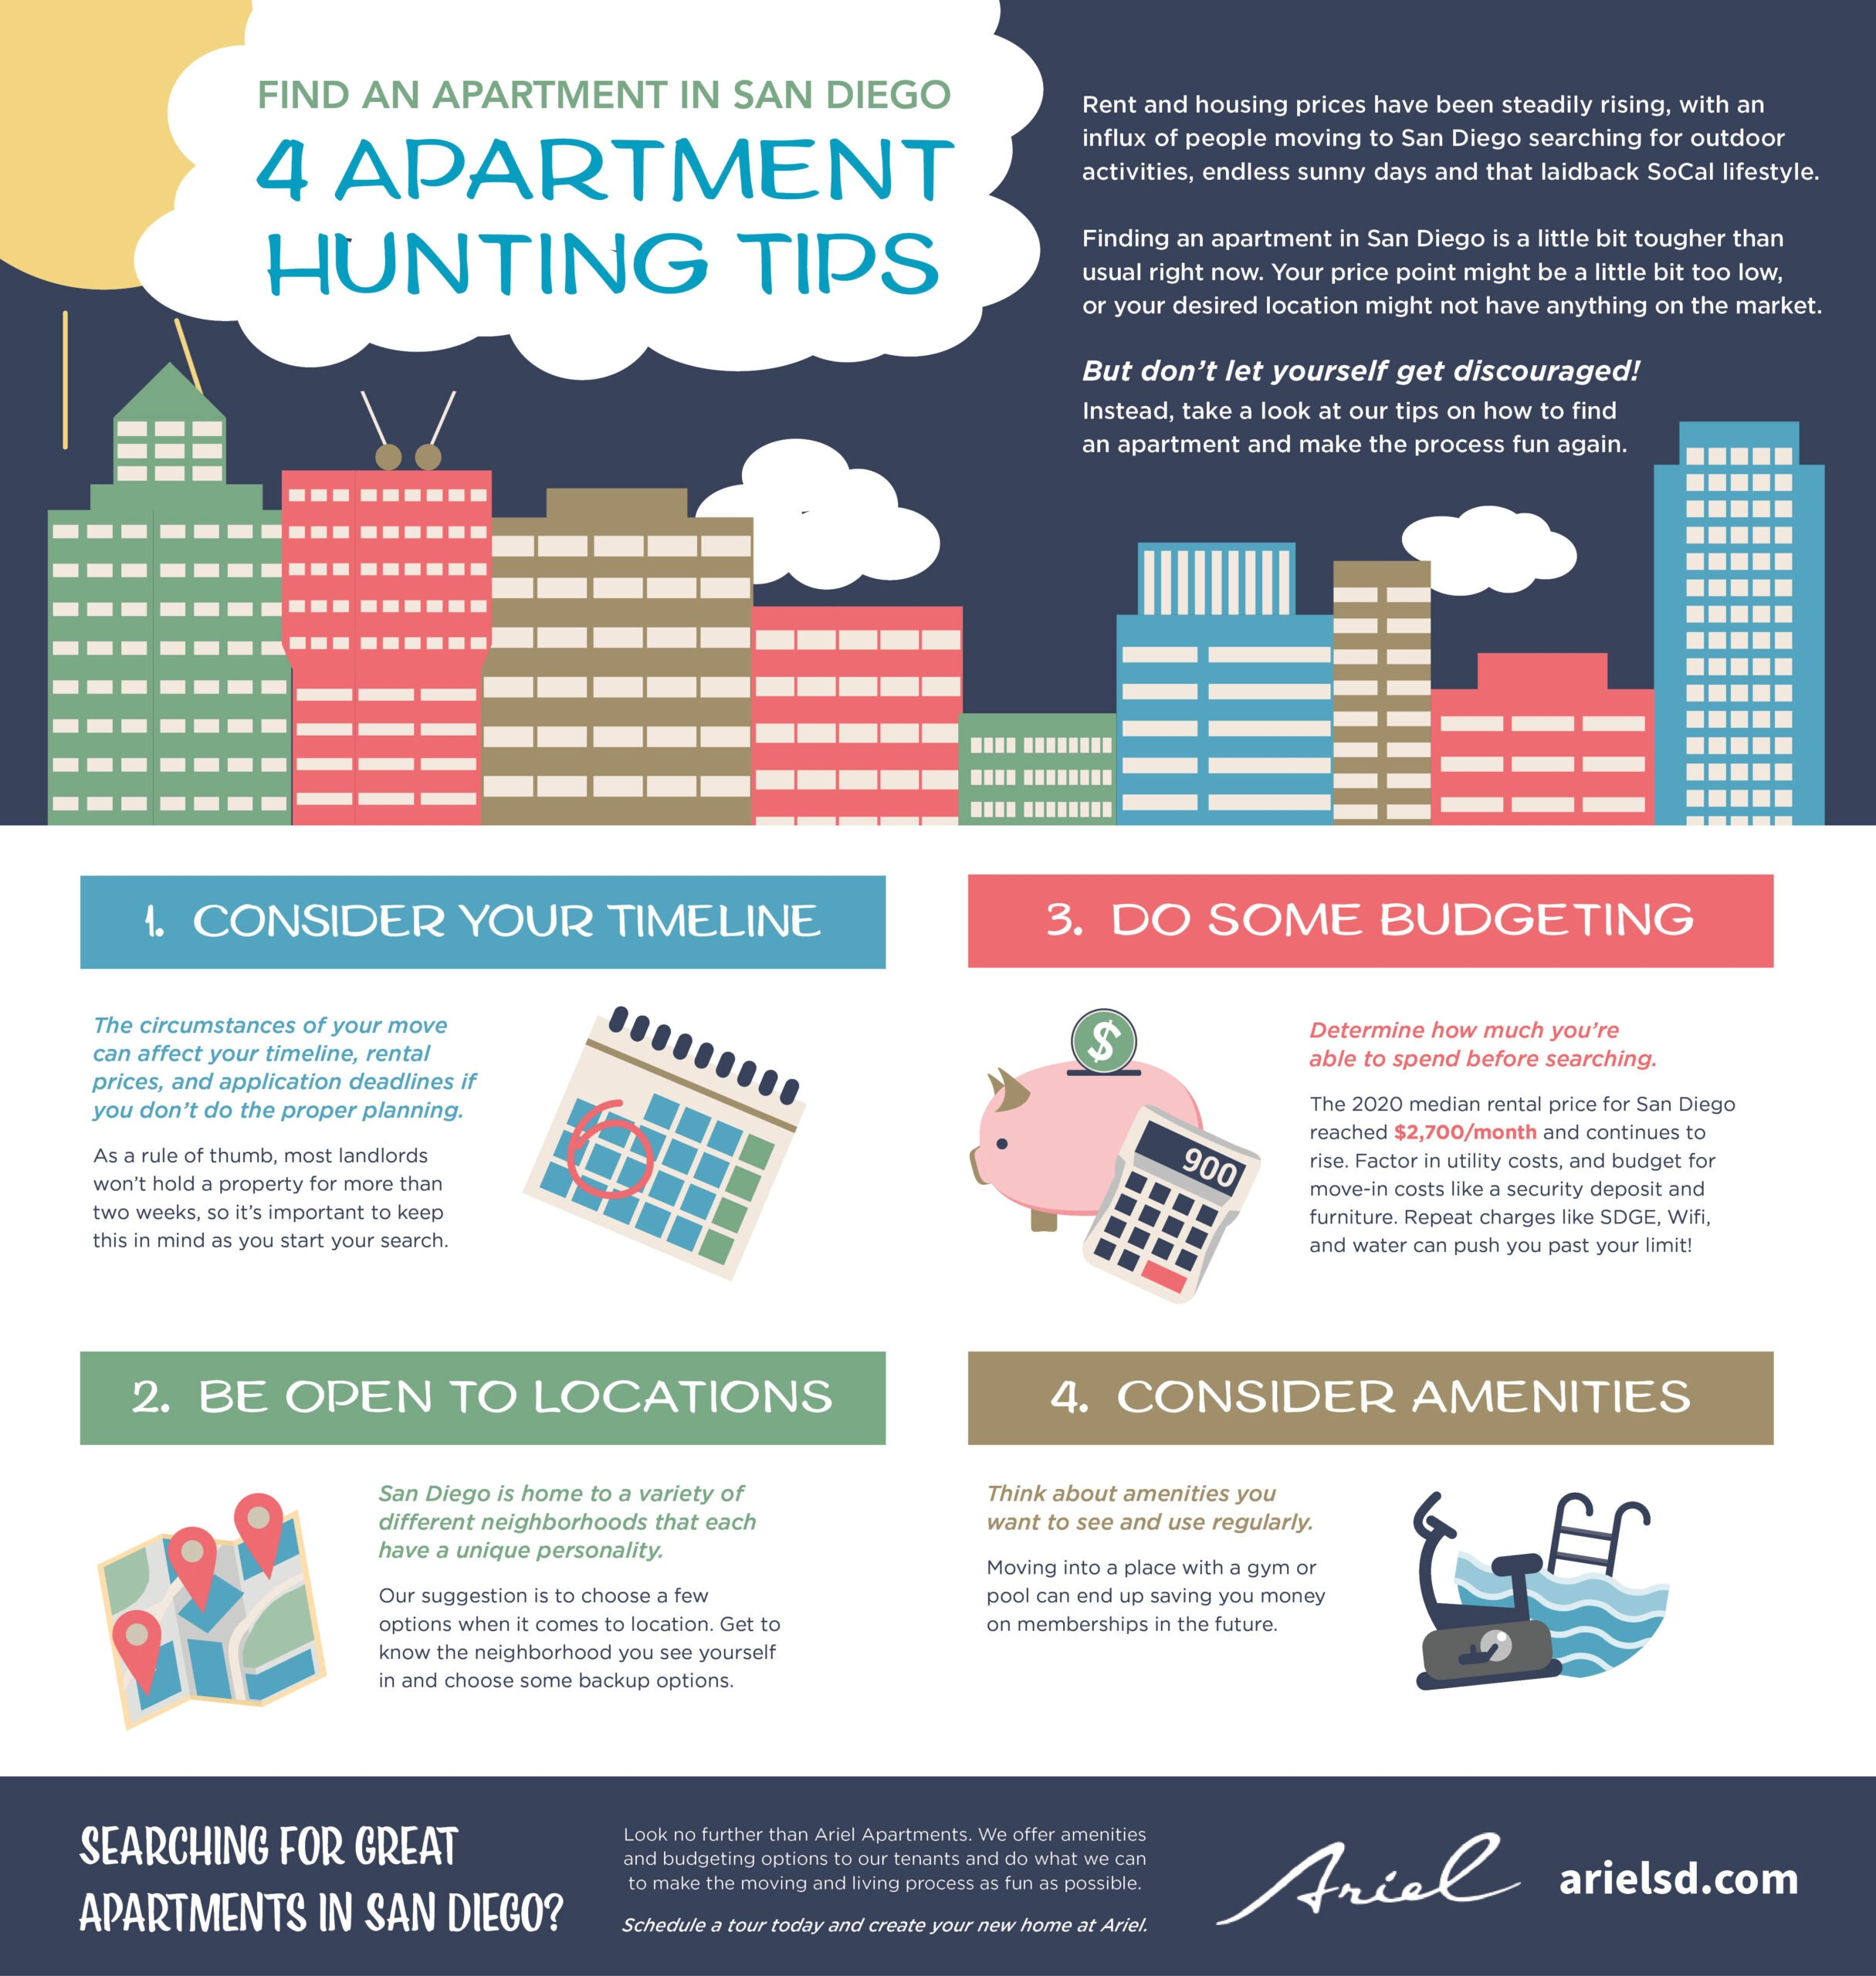 Apartment hunting tips in San Diego - Infographic